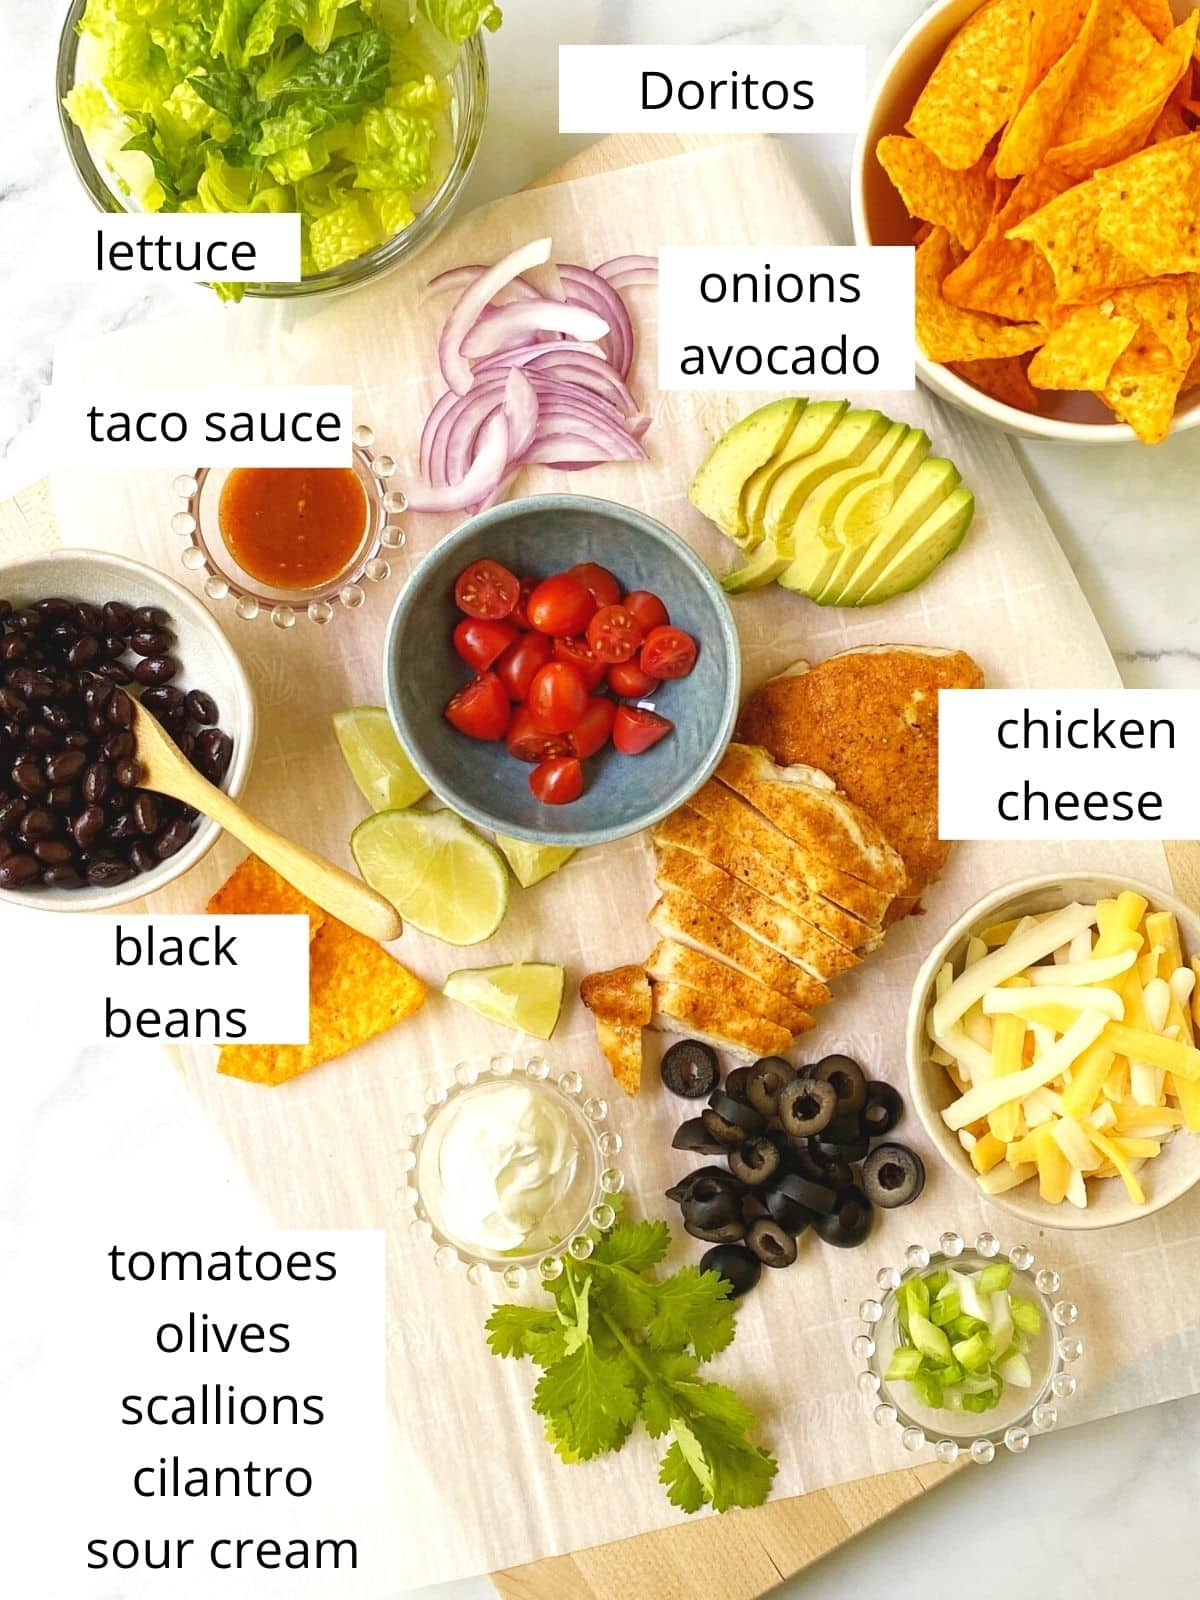 array of ingredients - lettuce, chips, chicken, cheese, and various taco salad fixings